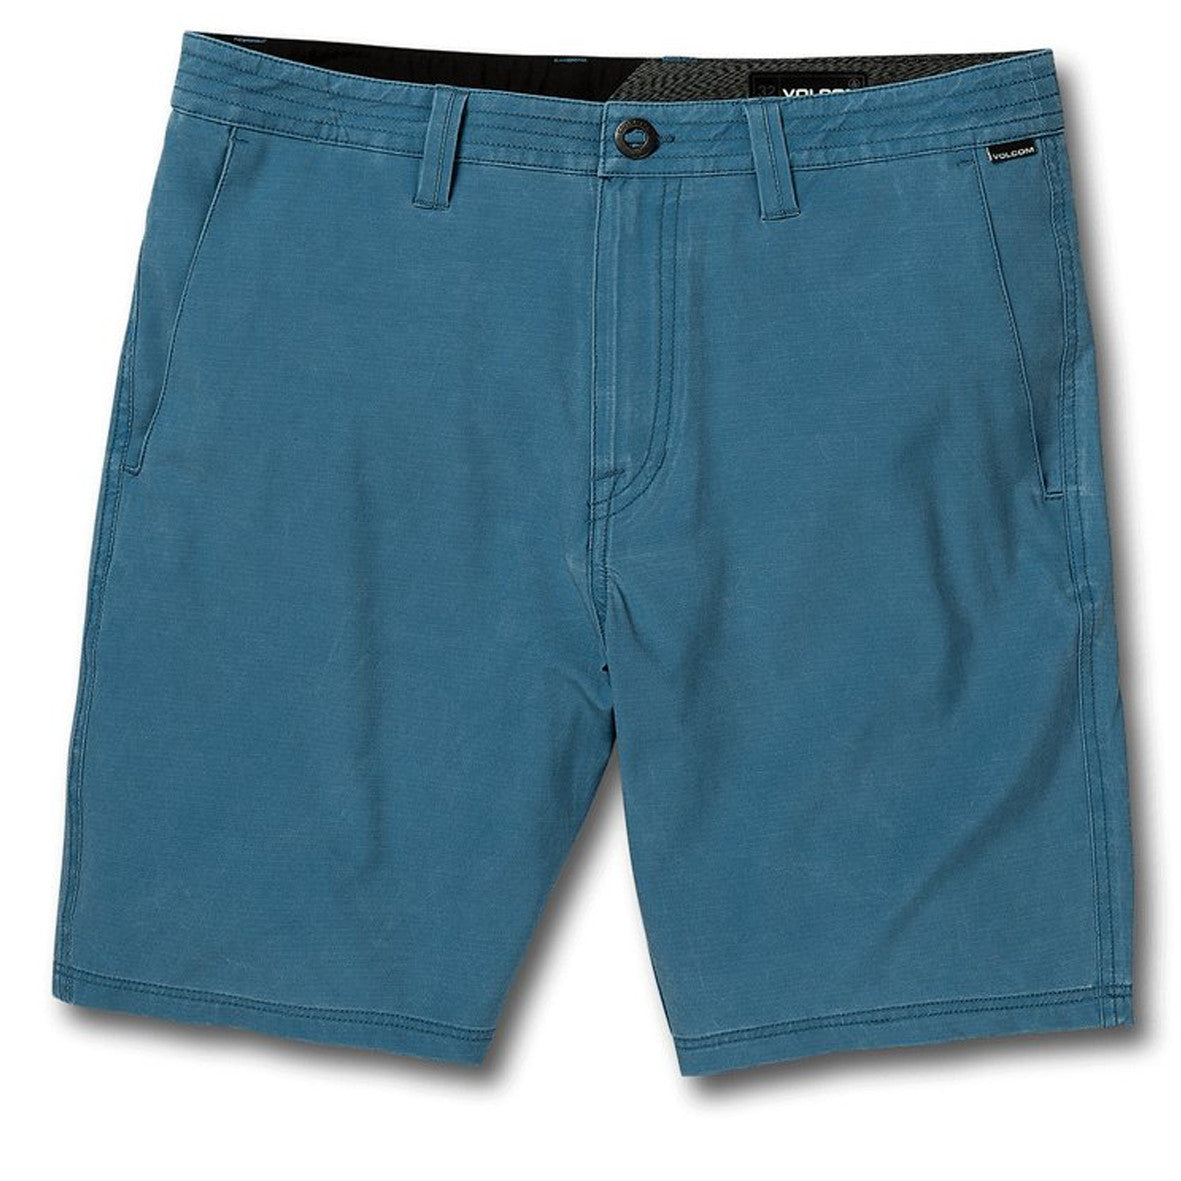 Stone Faded short 19 VBL